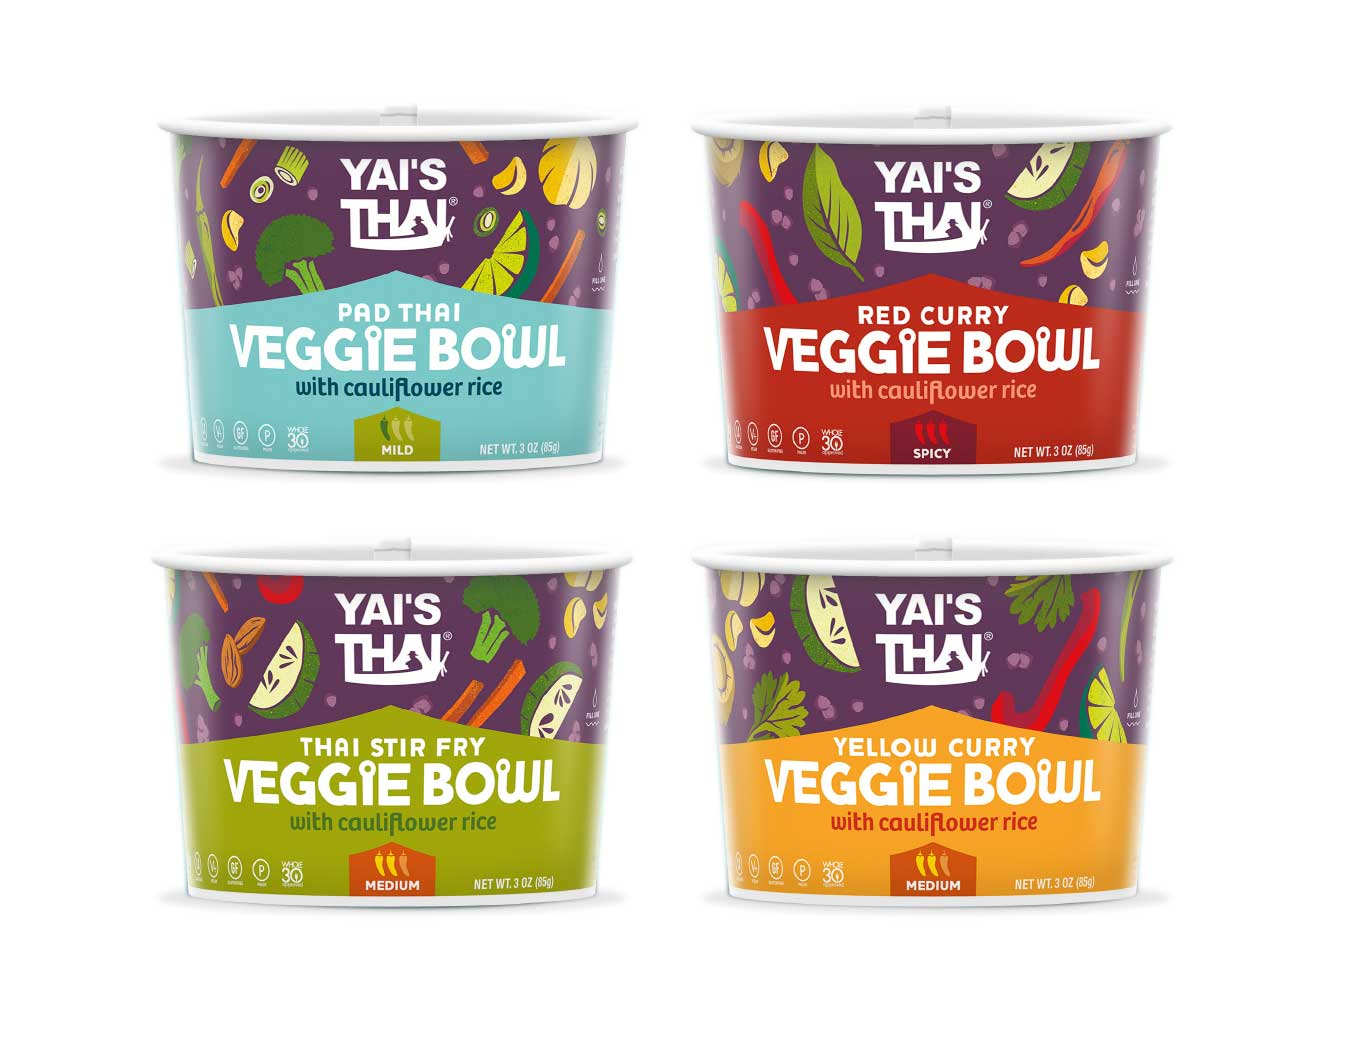 We evolved the packaging for this new product innovation — a set of healthy grab-and-go bowls. to create a stronger brand statement, we set the logo free from it's purple circle, and instead integrated the logo and veggie illustrations into a strong, recognizable purple banner that will appear across product lines. The peaked Thai roof remains as a strong graphic element to contain the flavor names.